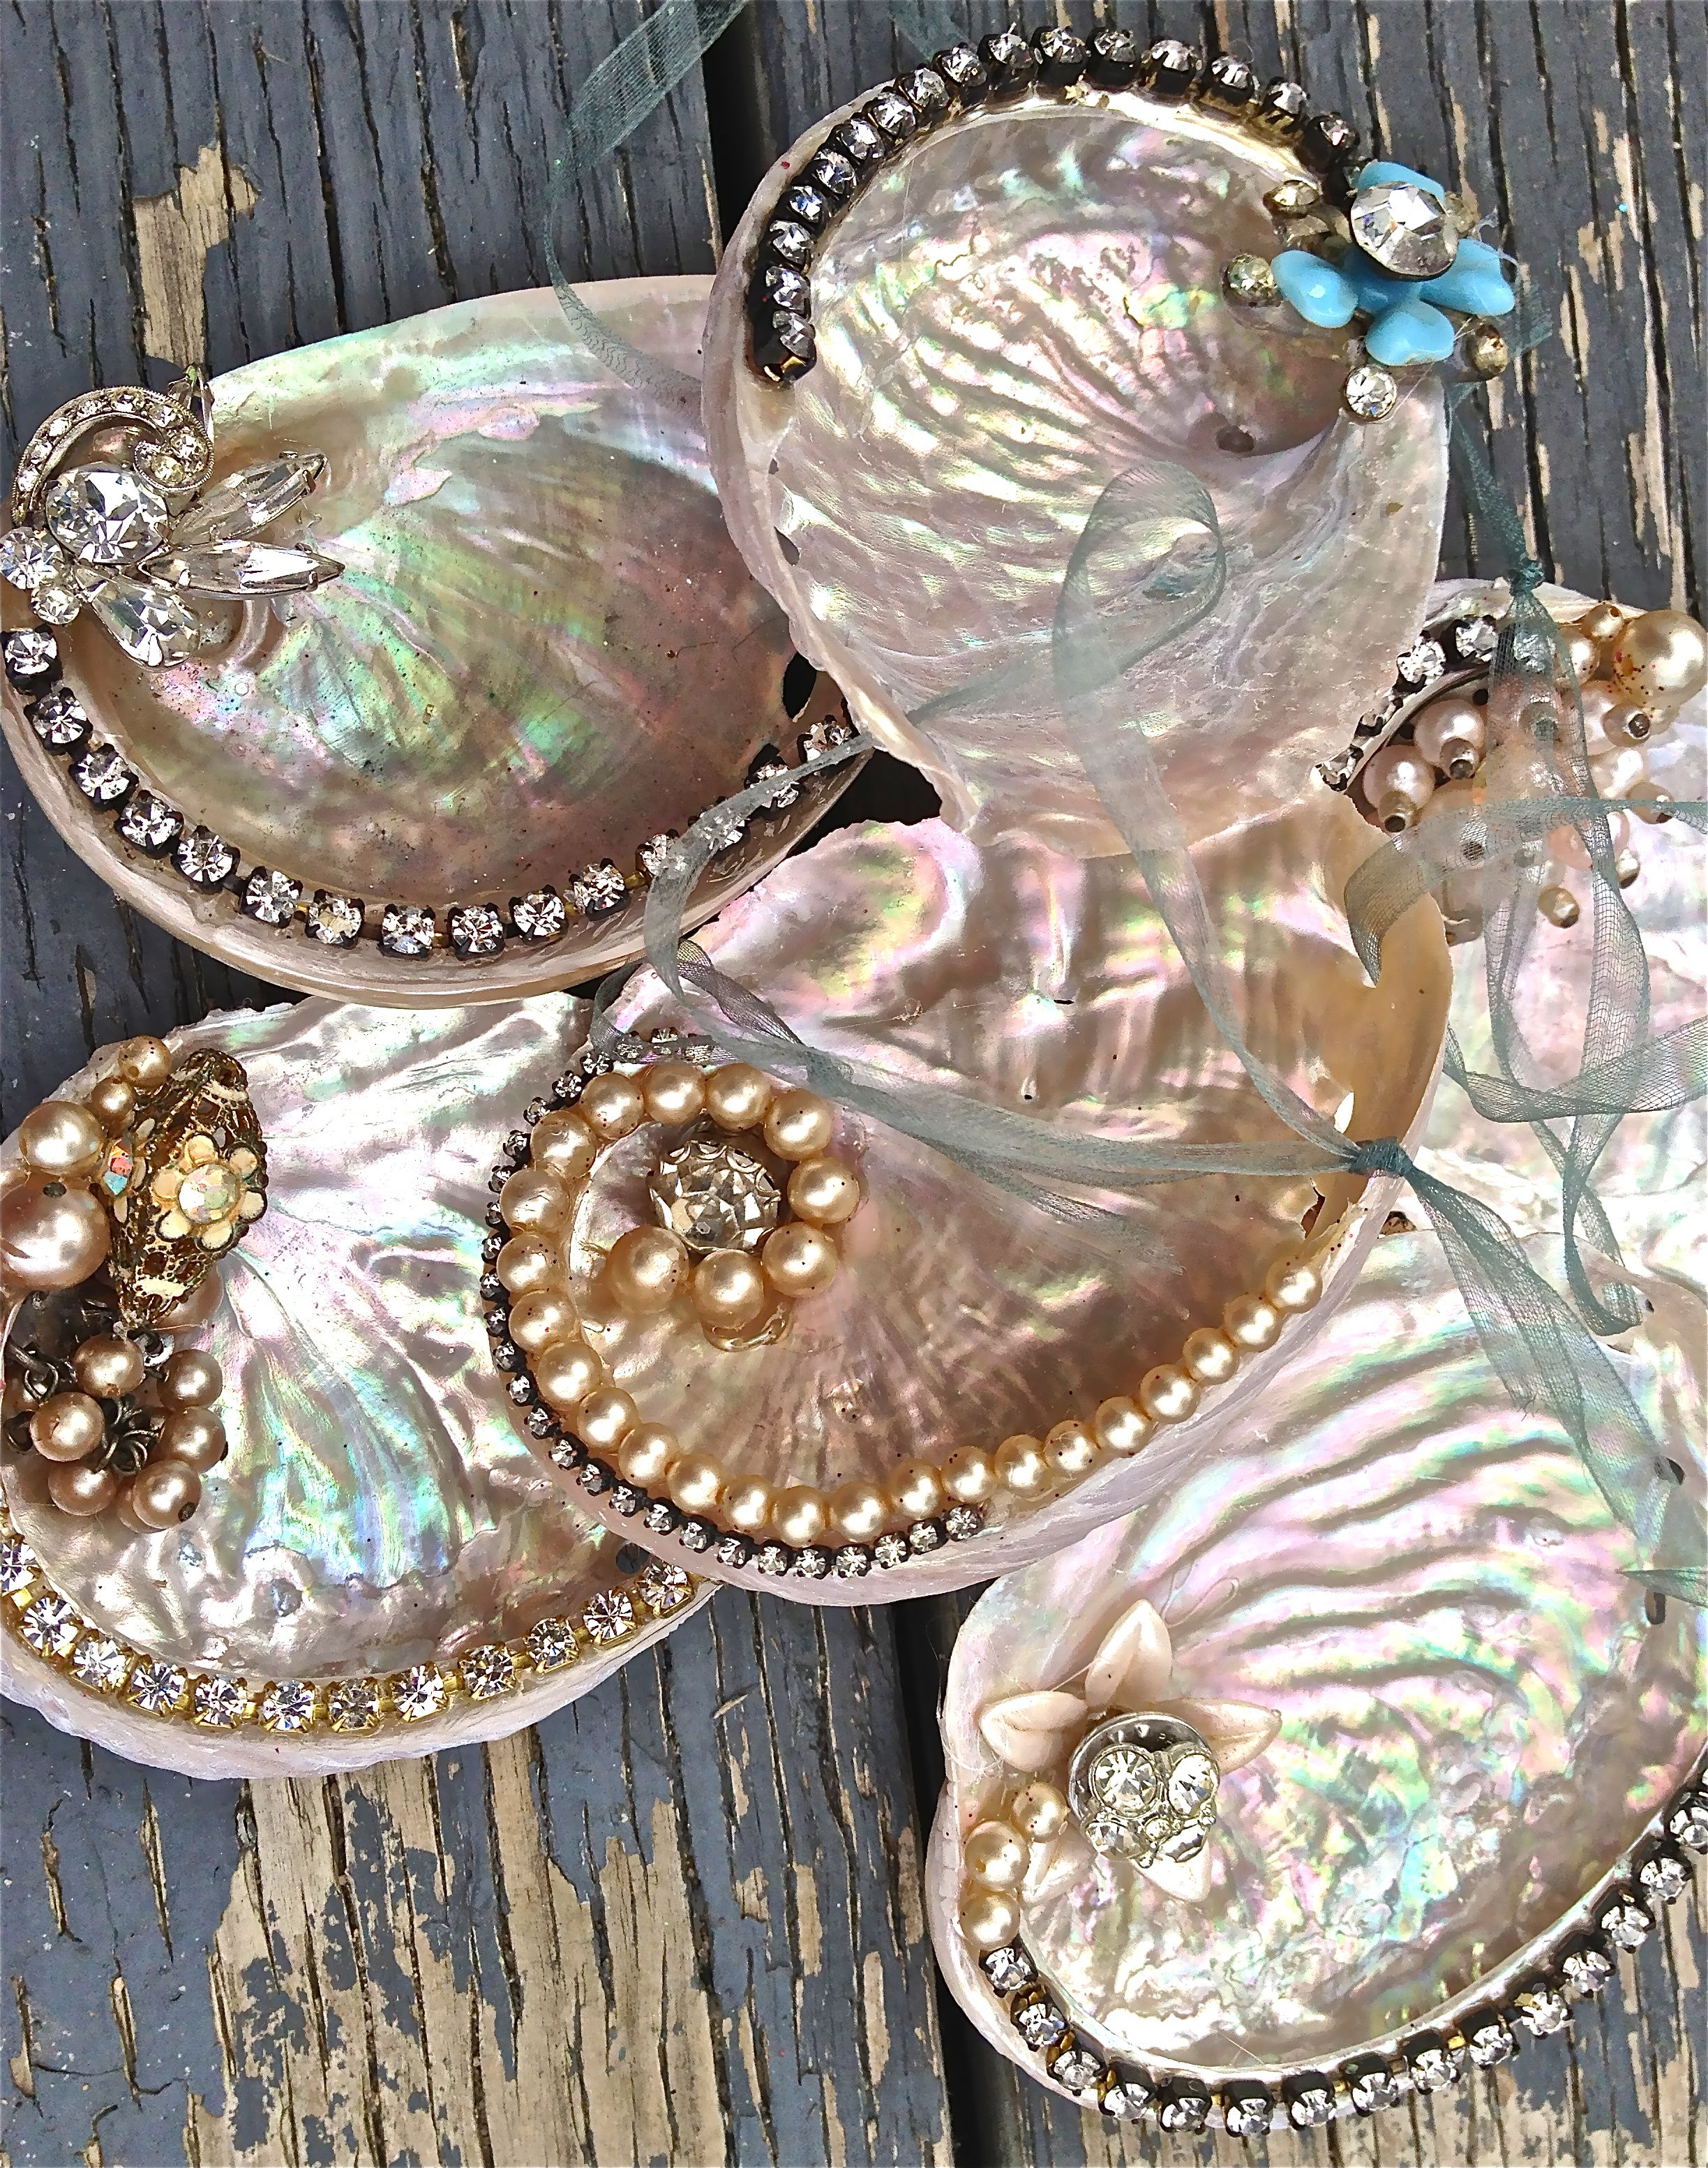 Abalone Ornaments Find Them At The Mermaid S Mercantile On Nov 27th Themermaidsmercantile Blogspot Com Seashell Crafts Shell Crafts Seashell Painting